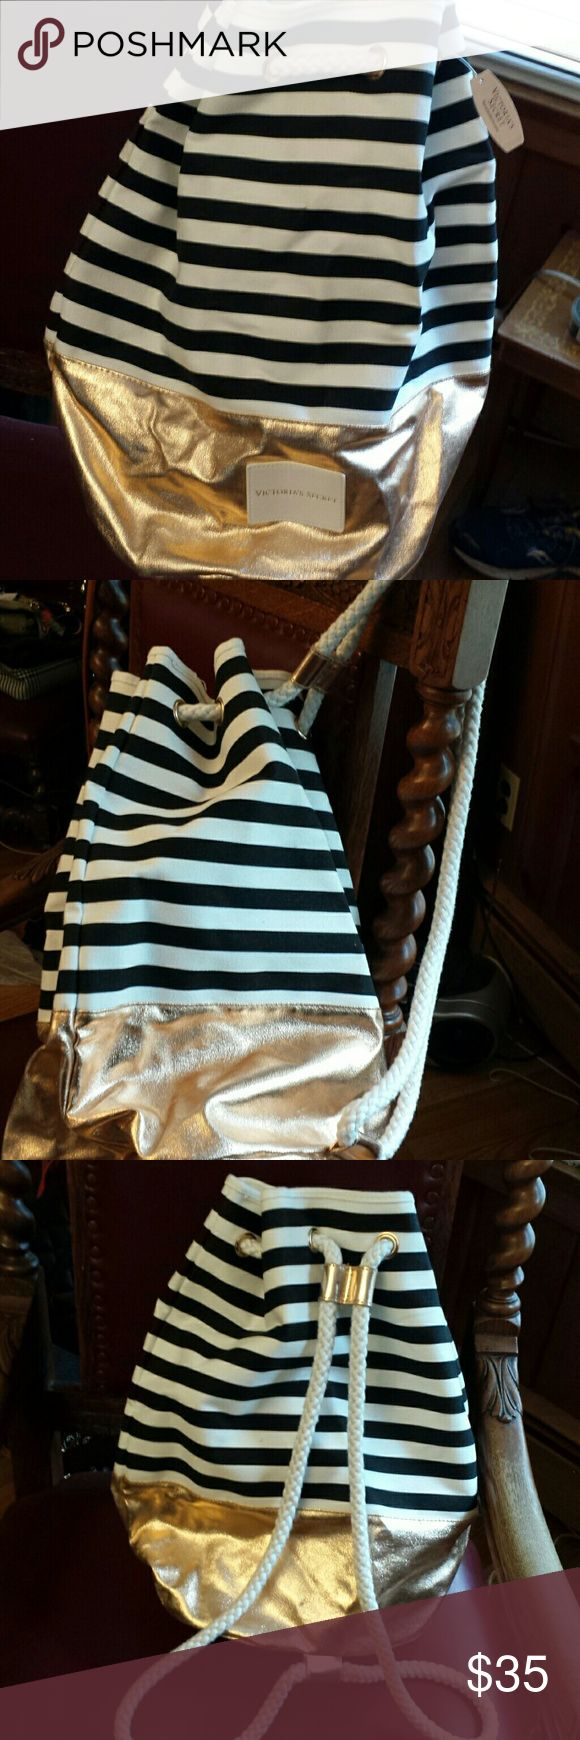 Victoria's Secret NWT Striped Backpack Victoria's Secret NWT Black and White Striped Backpack with gold bottom, Rope Cinch Tie, Good condition Bags Backpacks